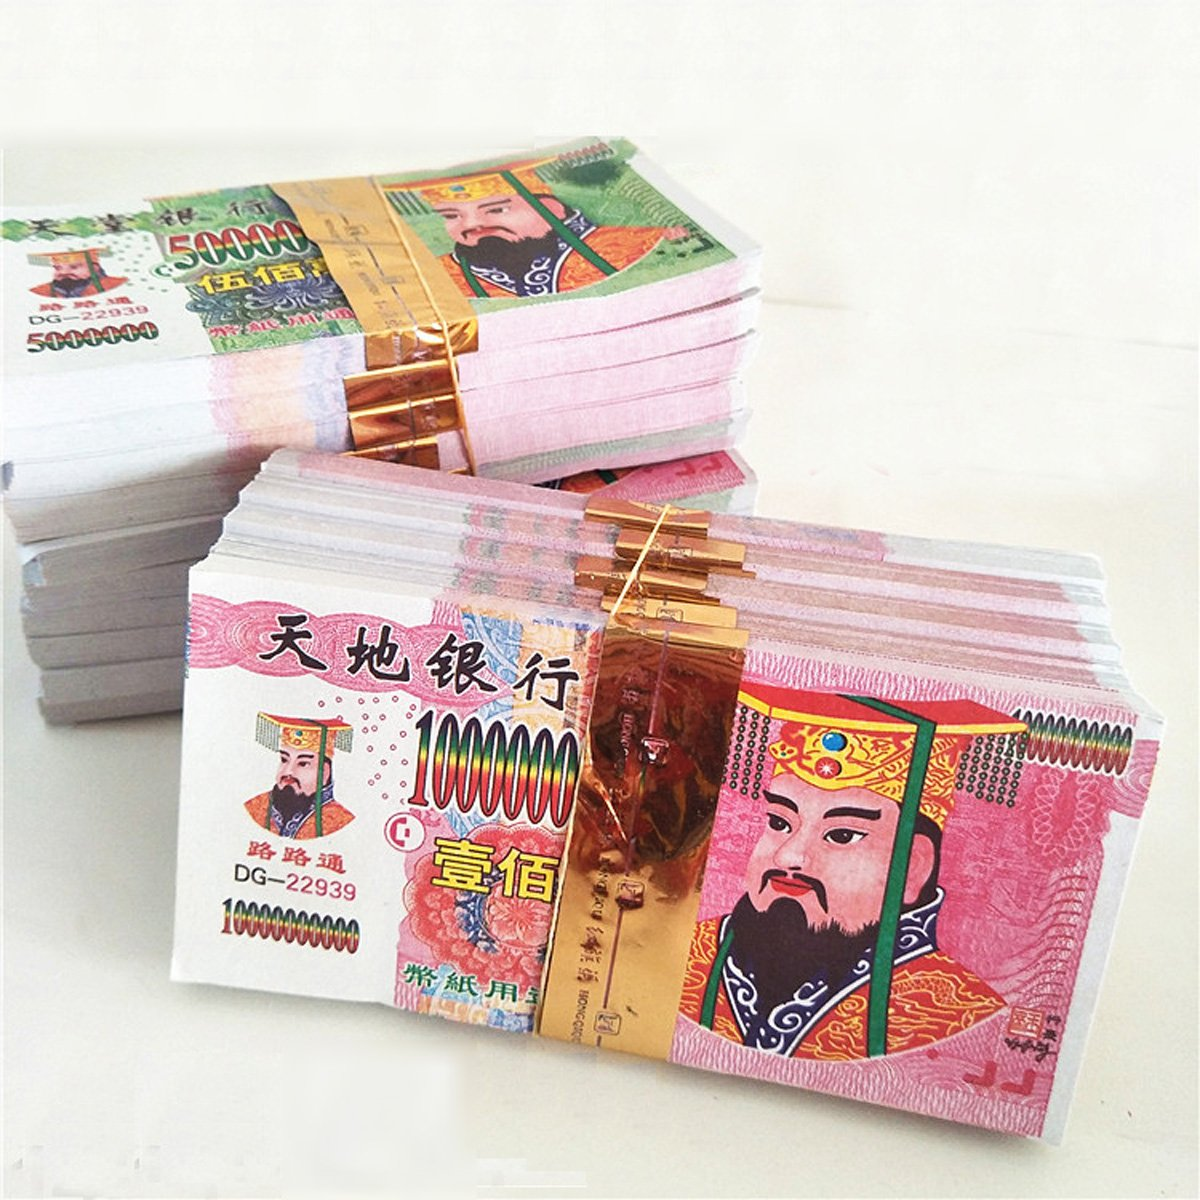 300pcs Chinese Joss Paper Money Hell Bank Notes For Funerals The Hungry Ghost Festival And The Qingming Festival